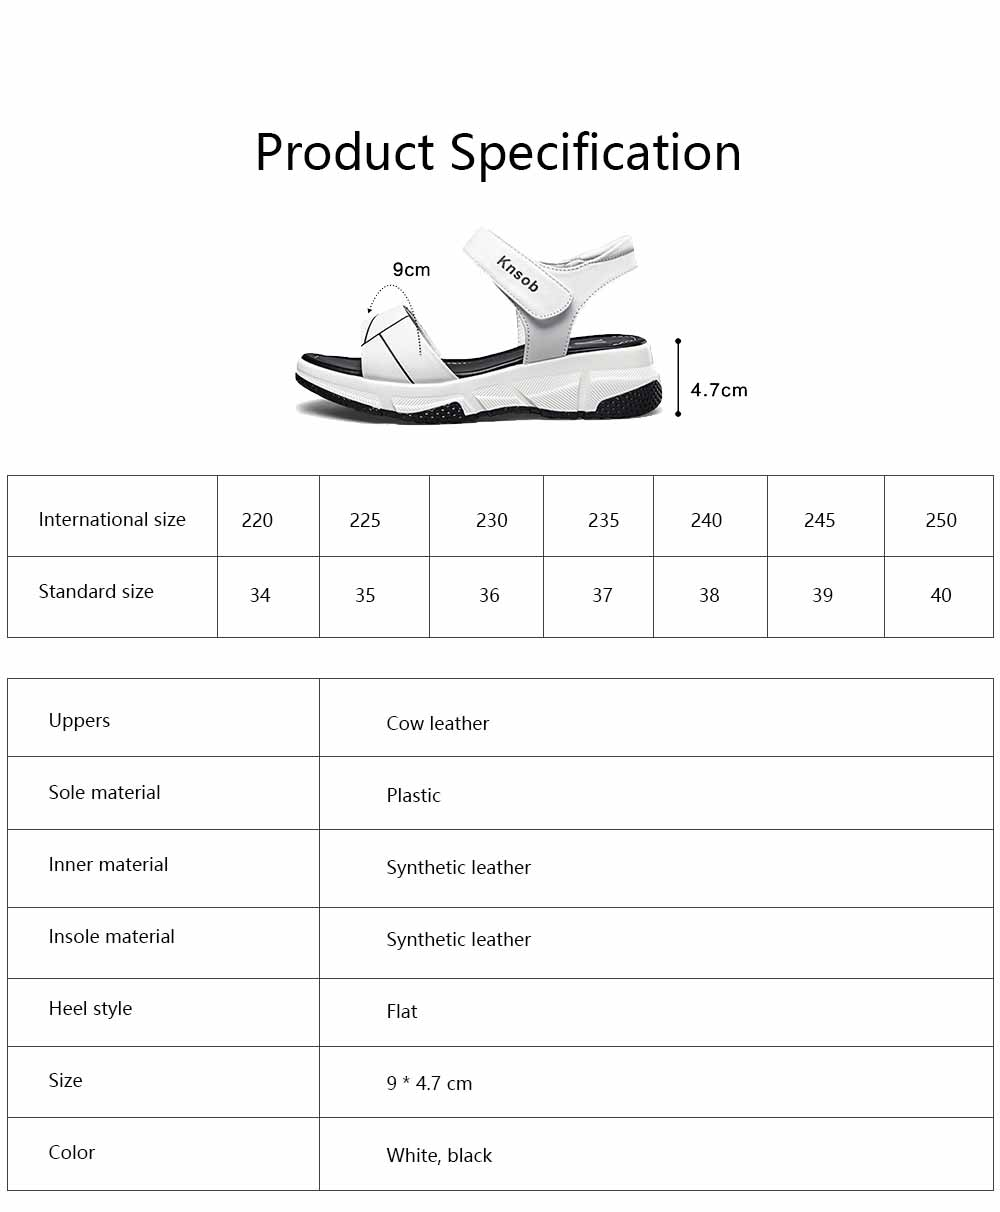 Sport Women Sandal Leather PU Material Flat-heeled Prevent Wear Foot Adjustable Velcro for Girl Shoes Summer 6